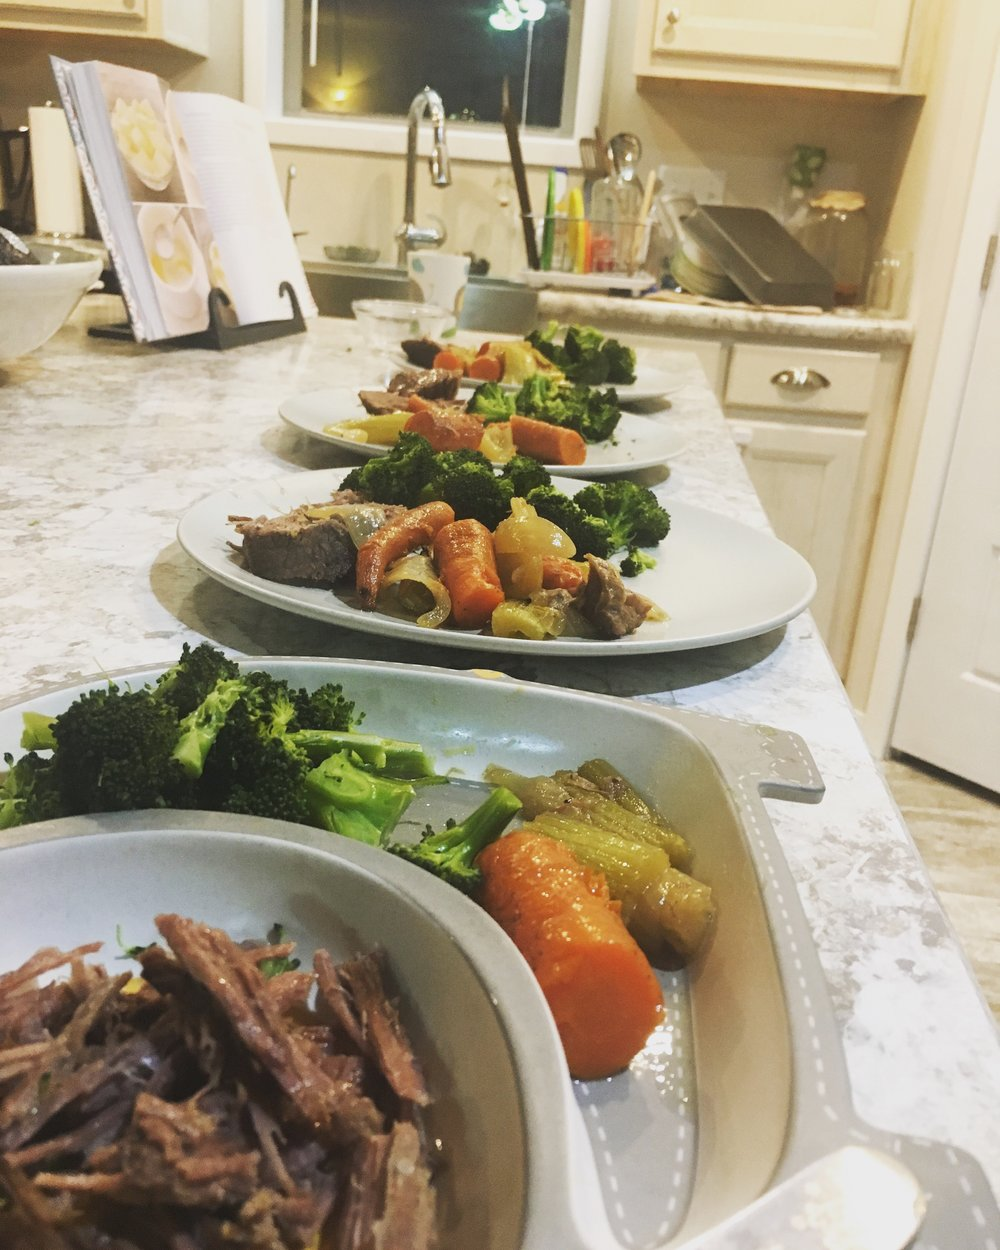 Crock pot beef w/ veggies for the whole fam